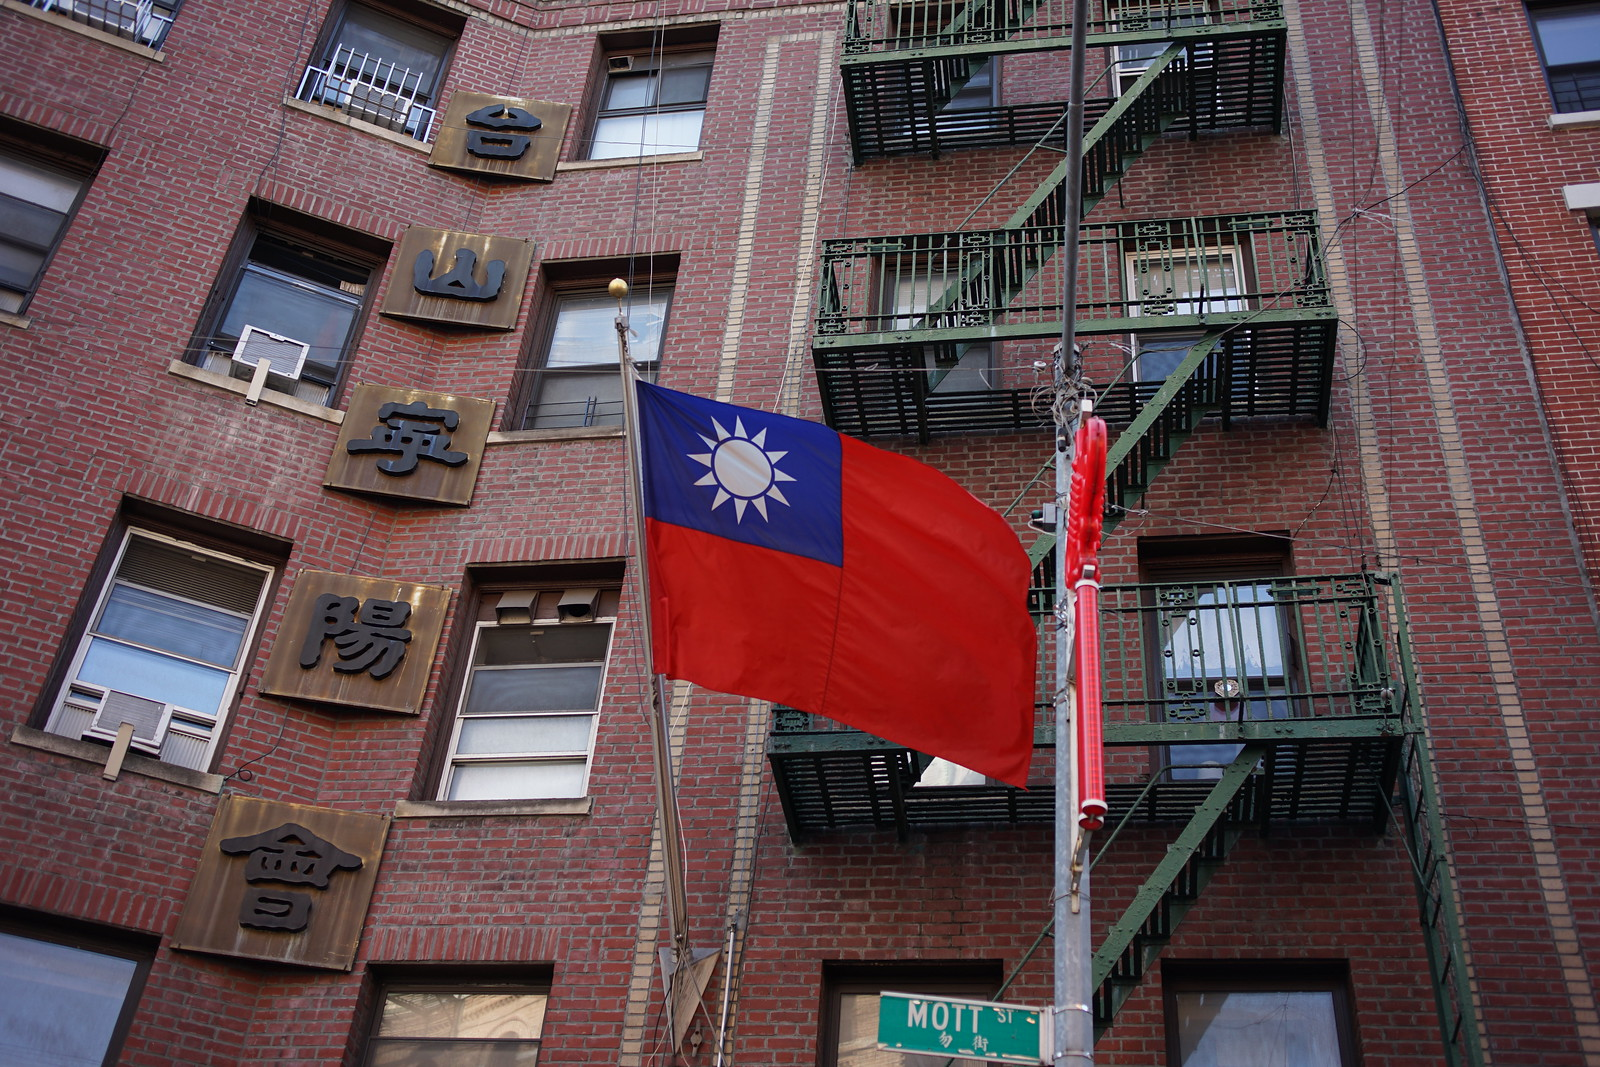 Taiwan/Republic of China flag on Mott & Pell